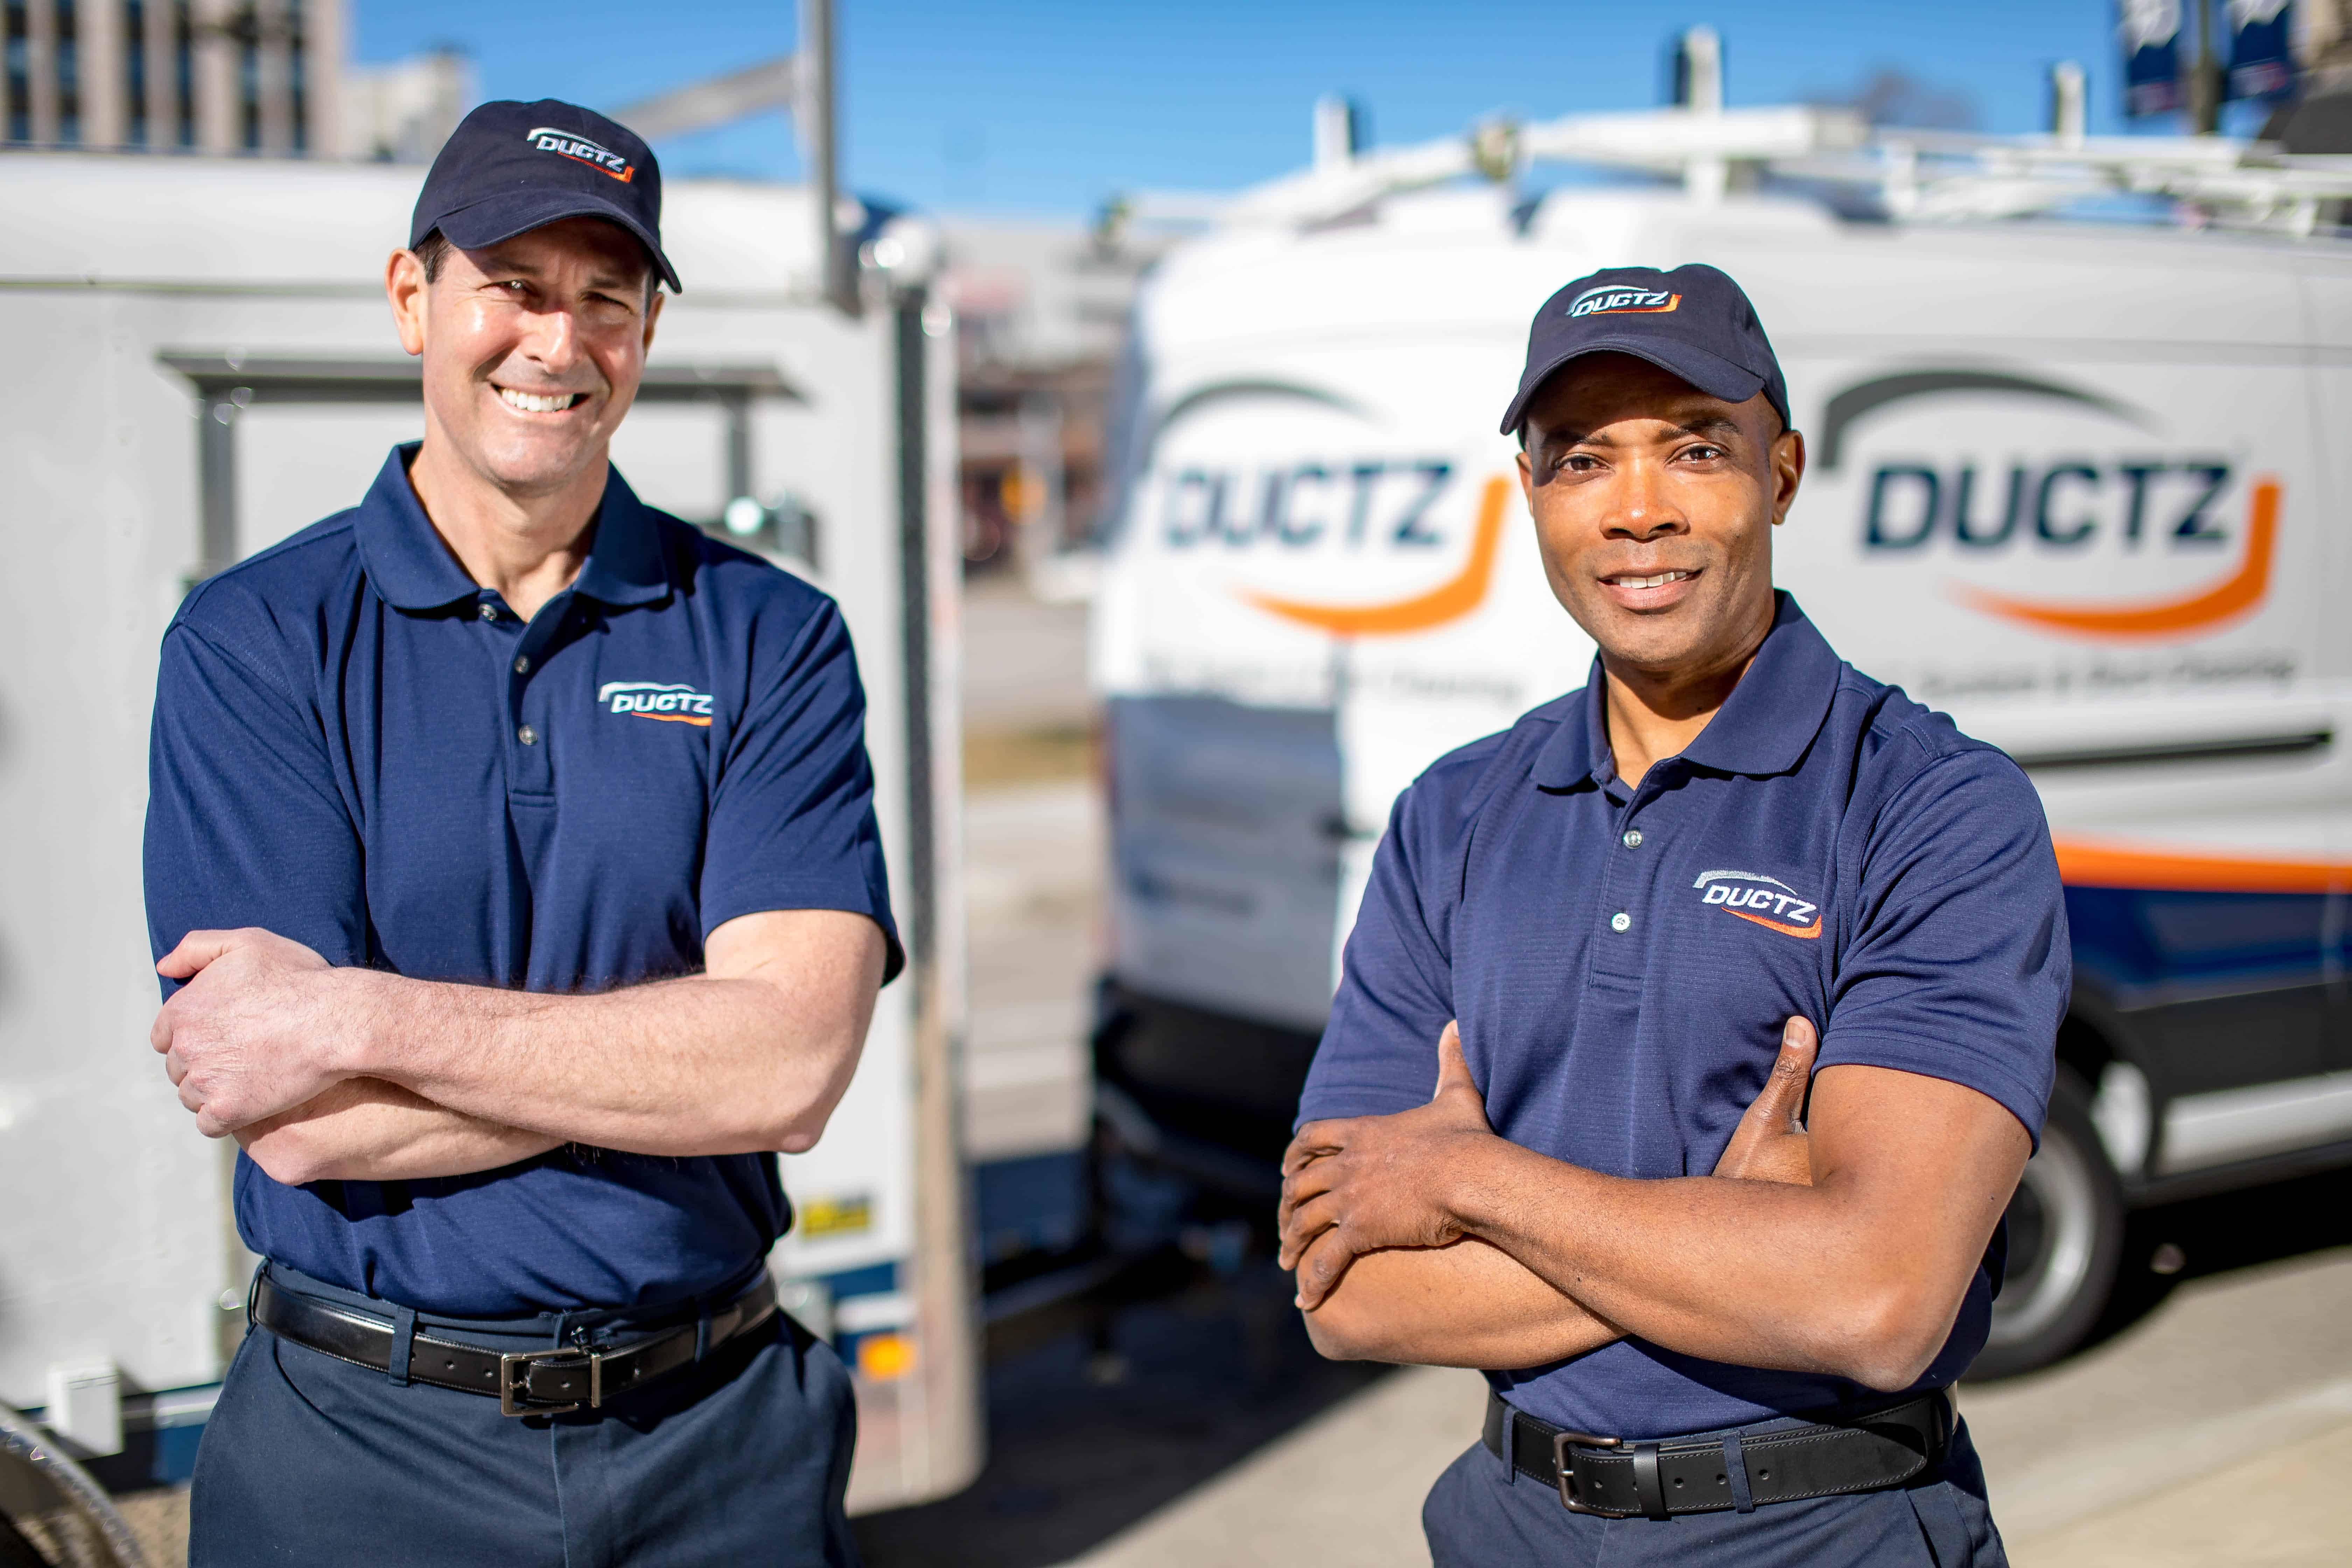 DUCTZ Provides Indoor Air Quality Assurance